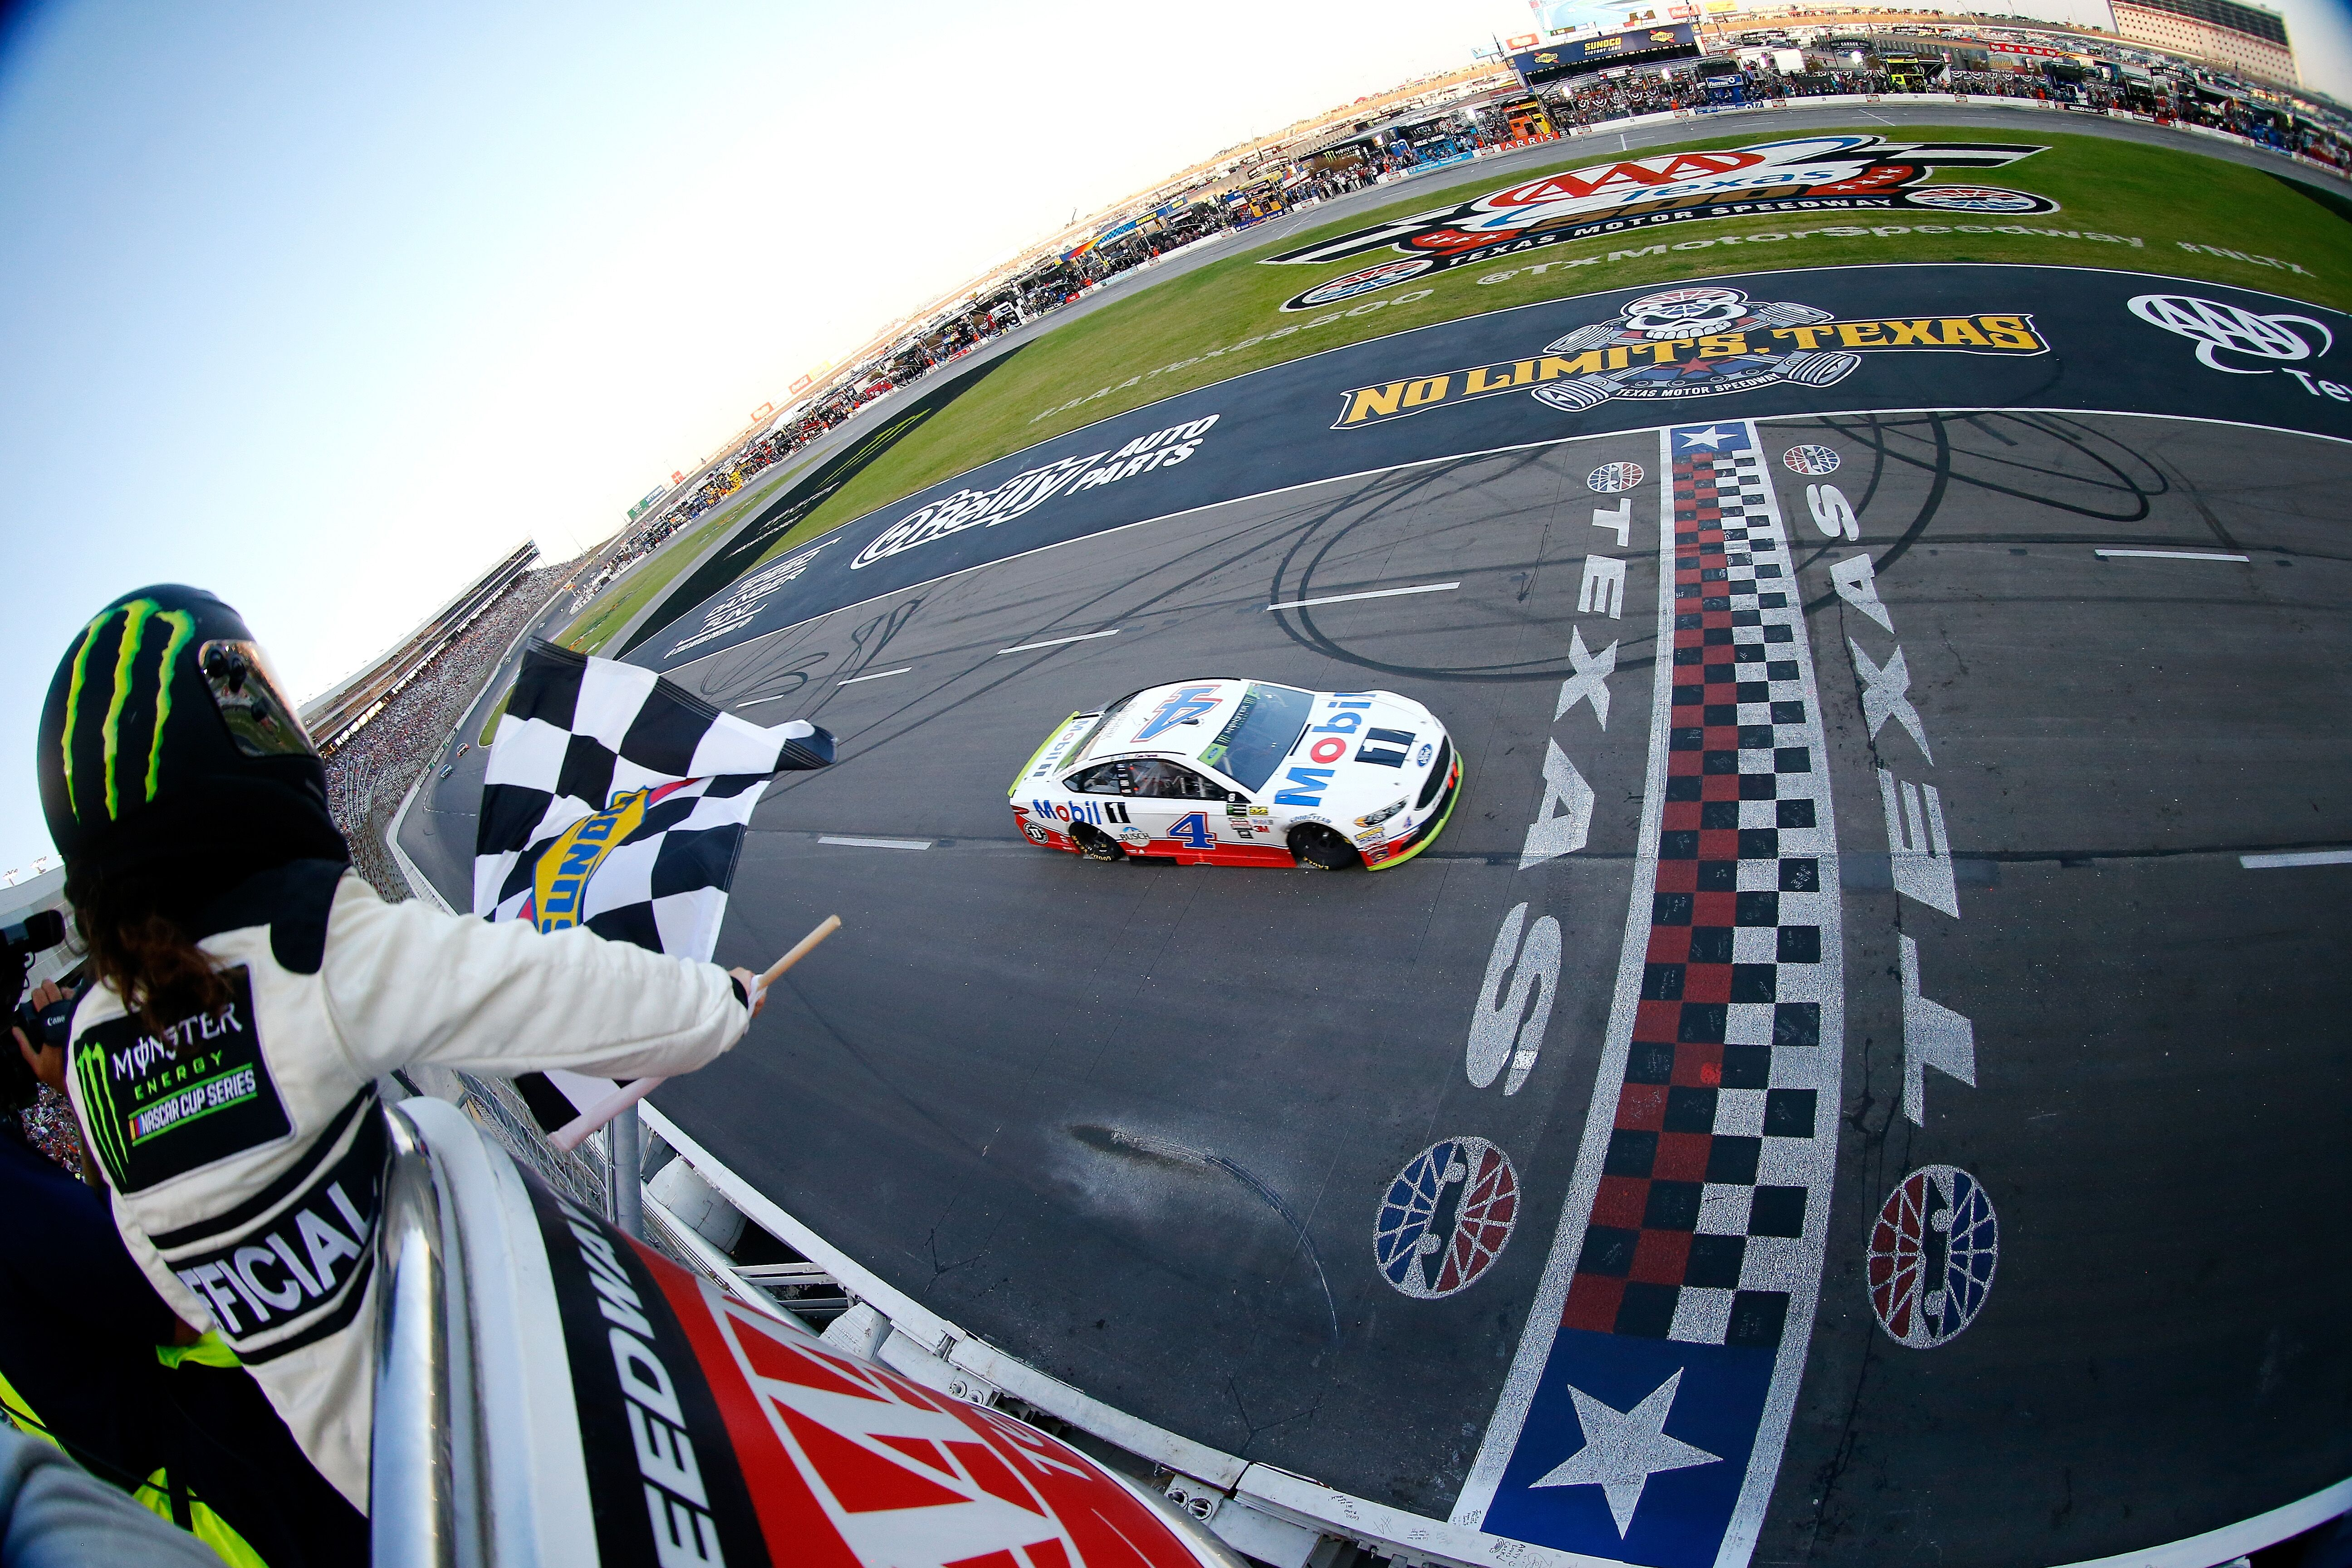 Nascar top 10 texas motor speedway races sportdfw for Nascar tickets for texas motor speedway